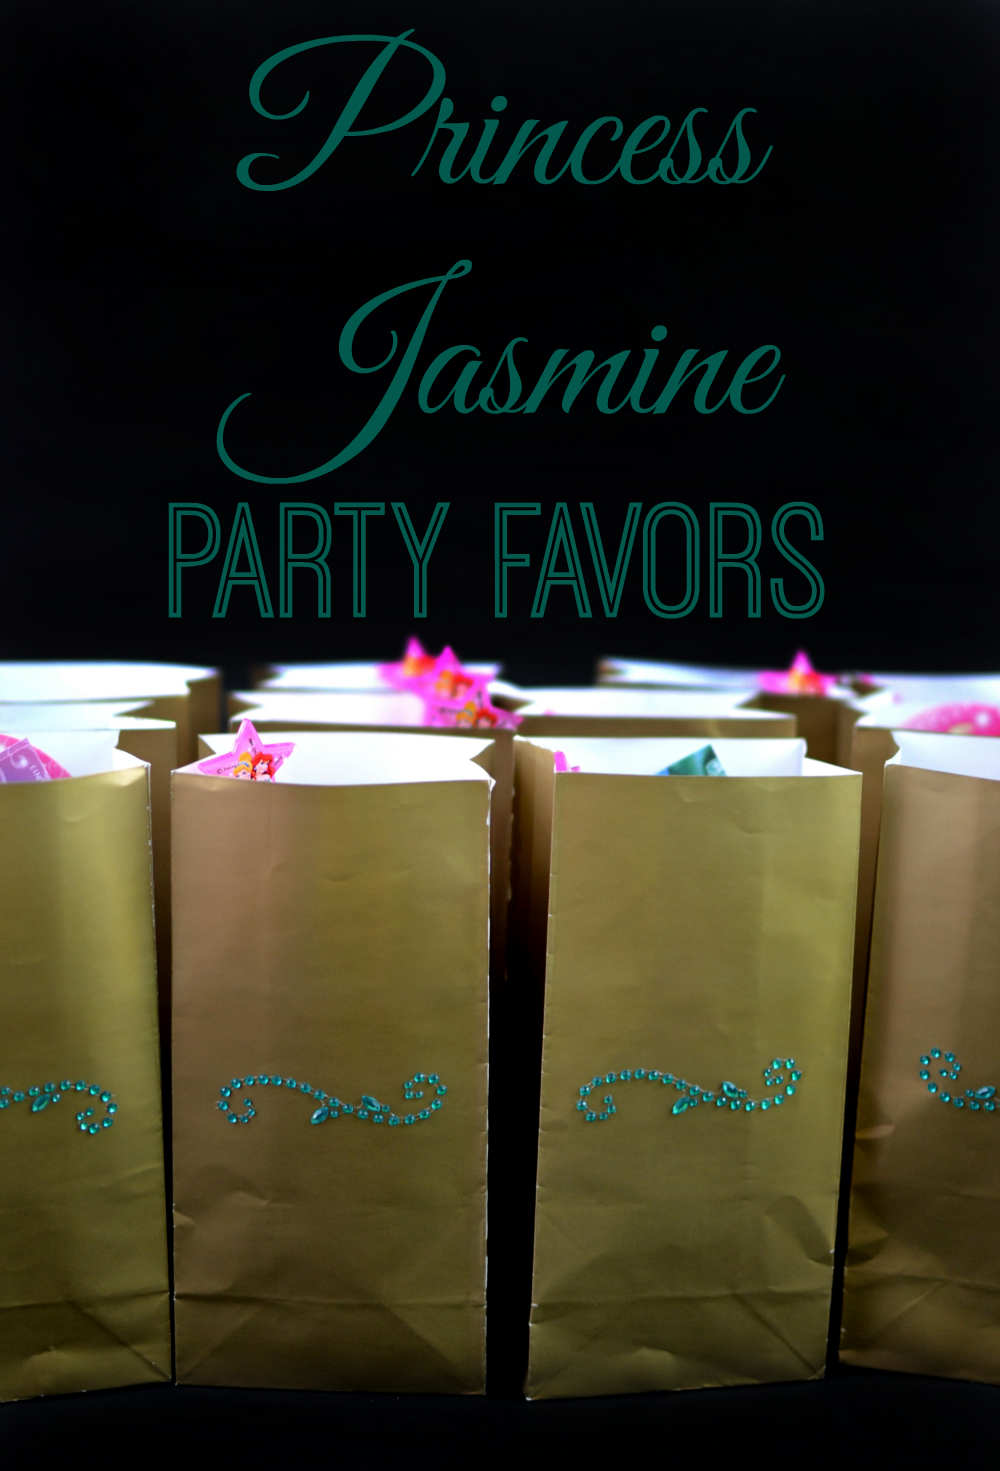 Princess Jasmine Party Favors And Photo Spot As The Bunny Hops